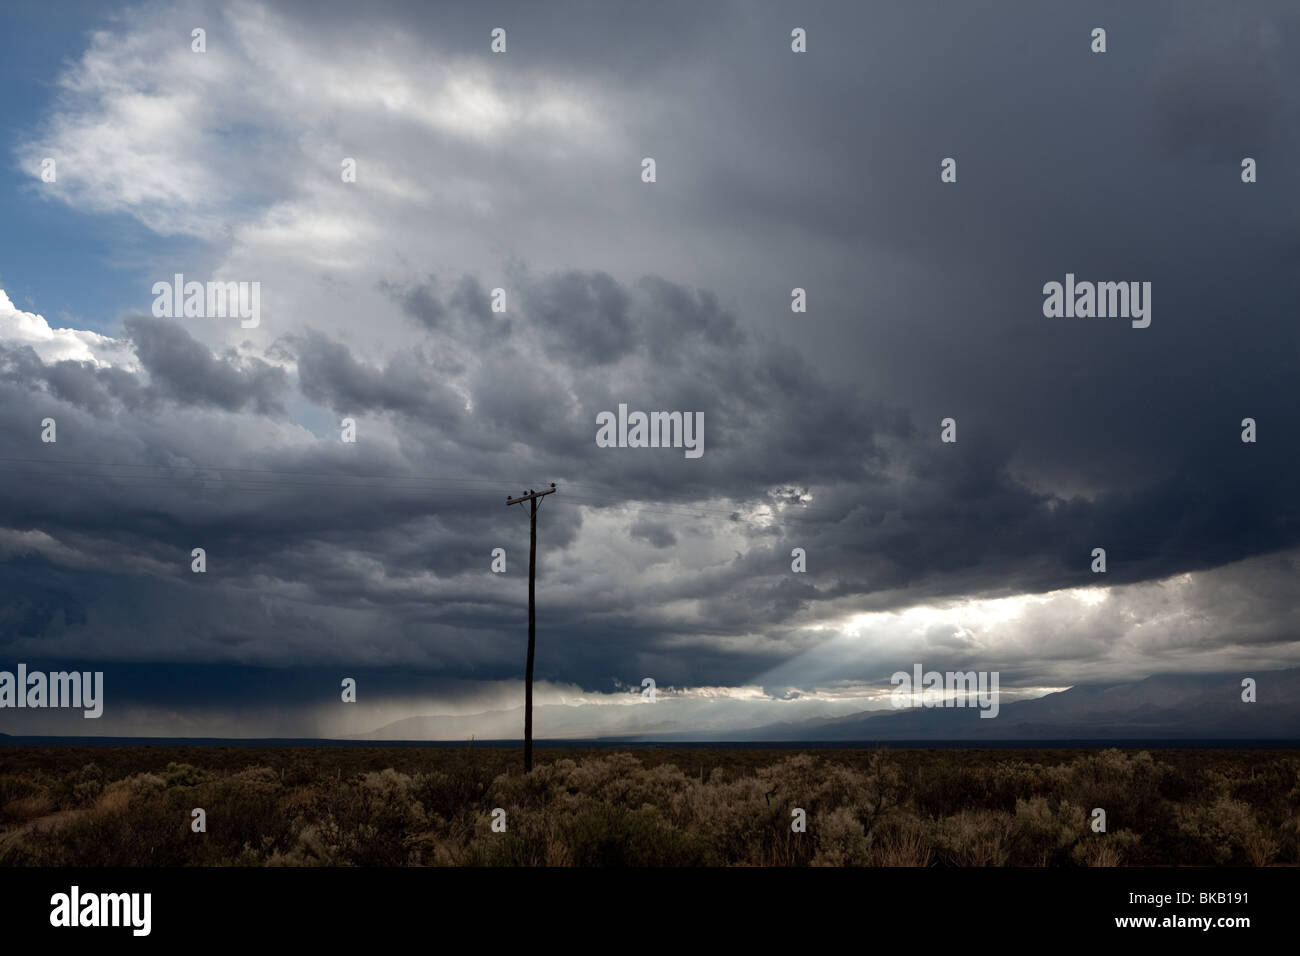 Big storm in Mendoza, Argentina, near the Andes Mountains in route 40. - Stock Image